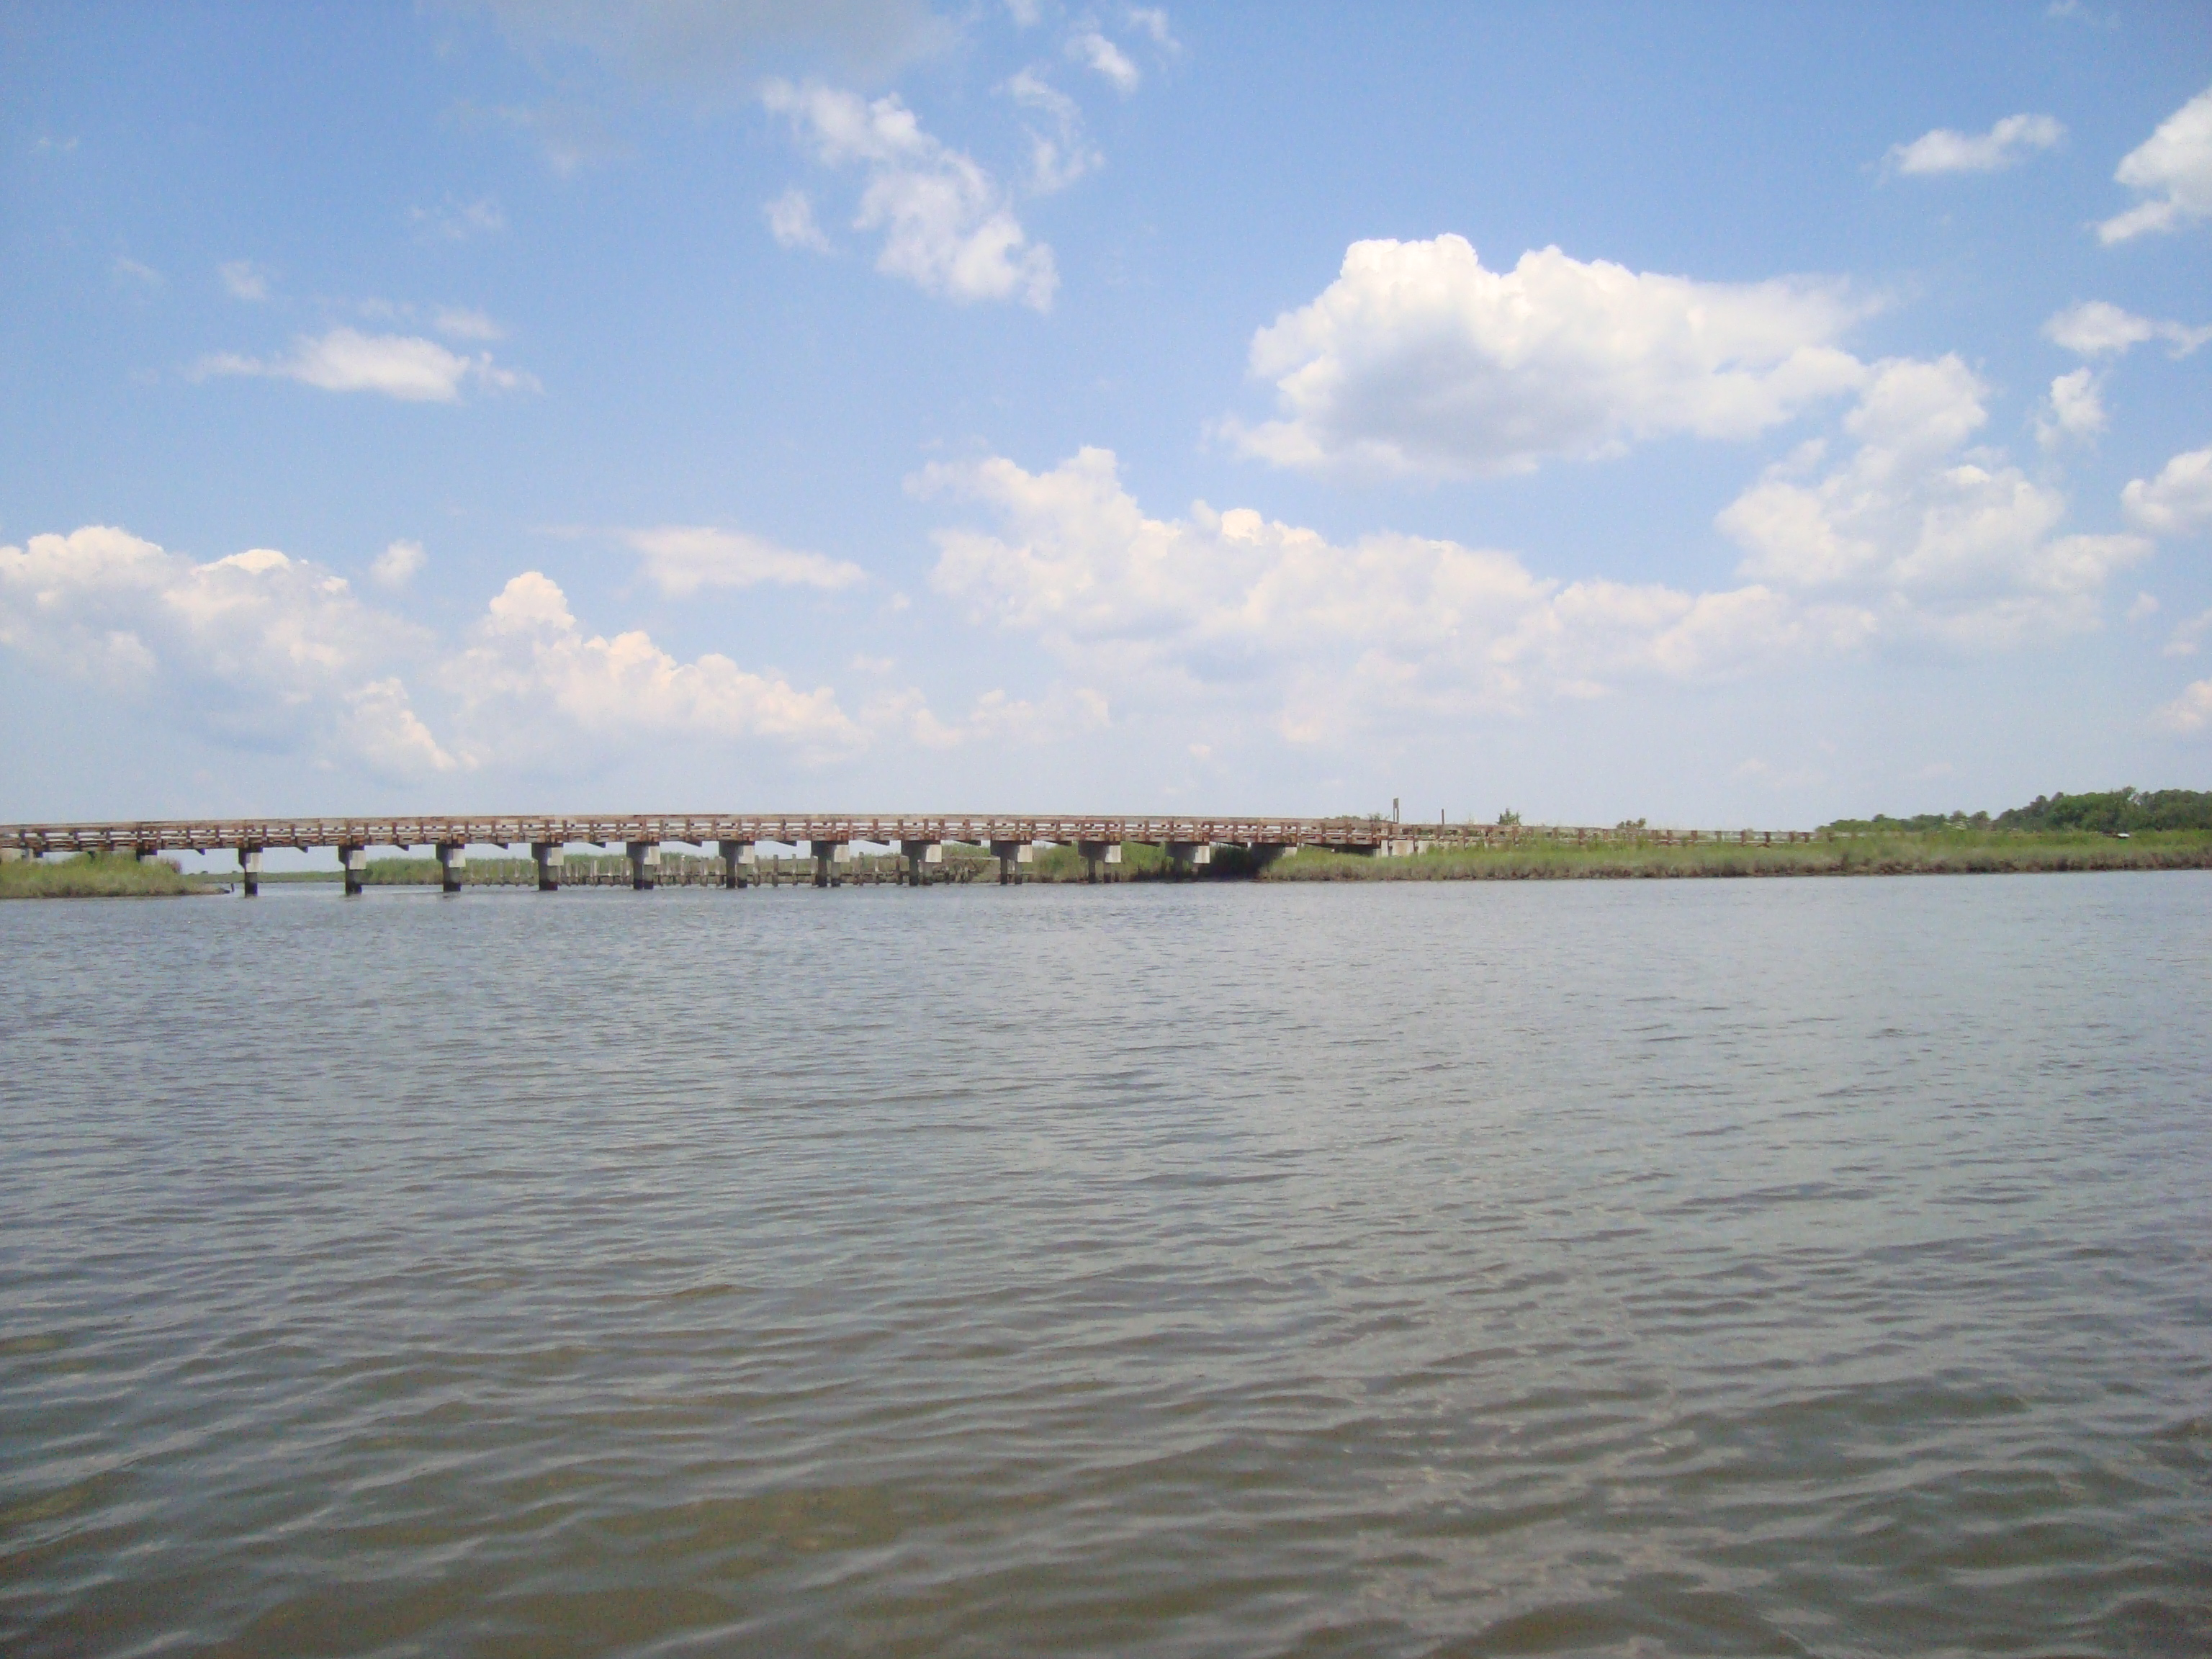 The Wetipquin Road bridge, as seen from upriver.